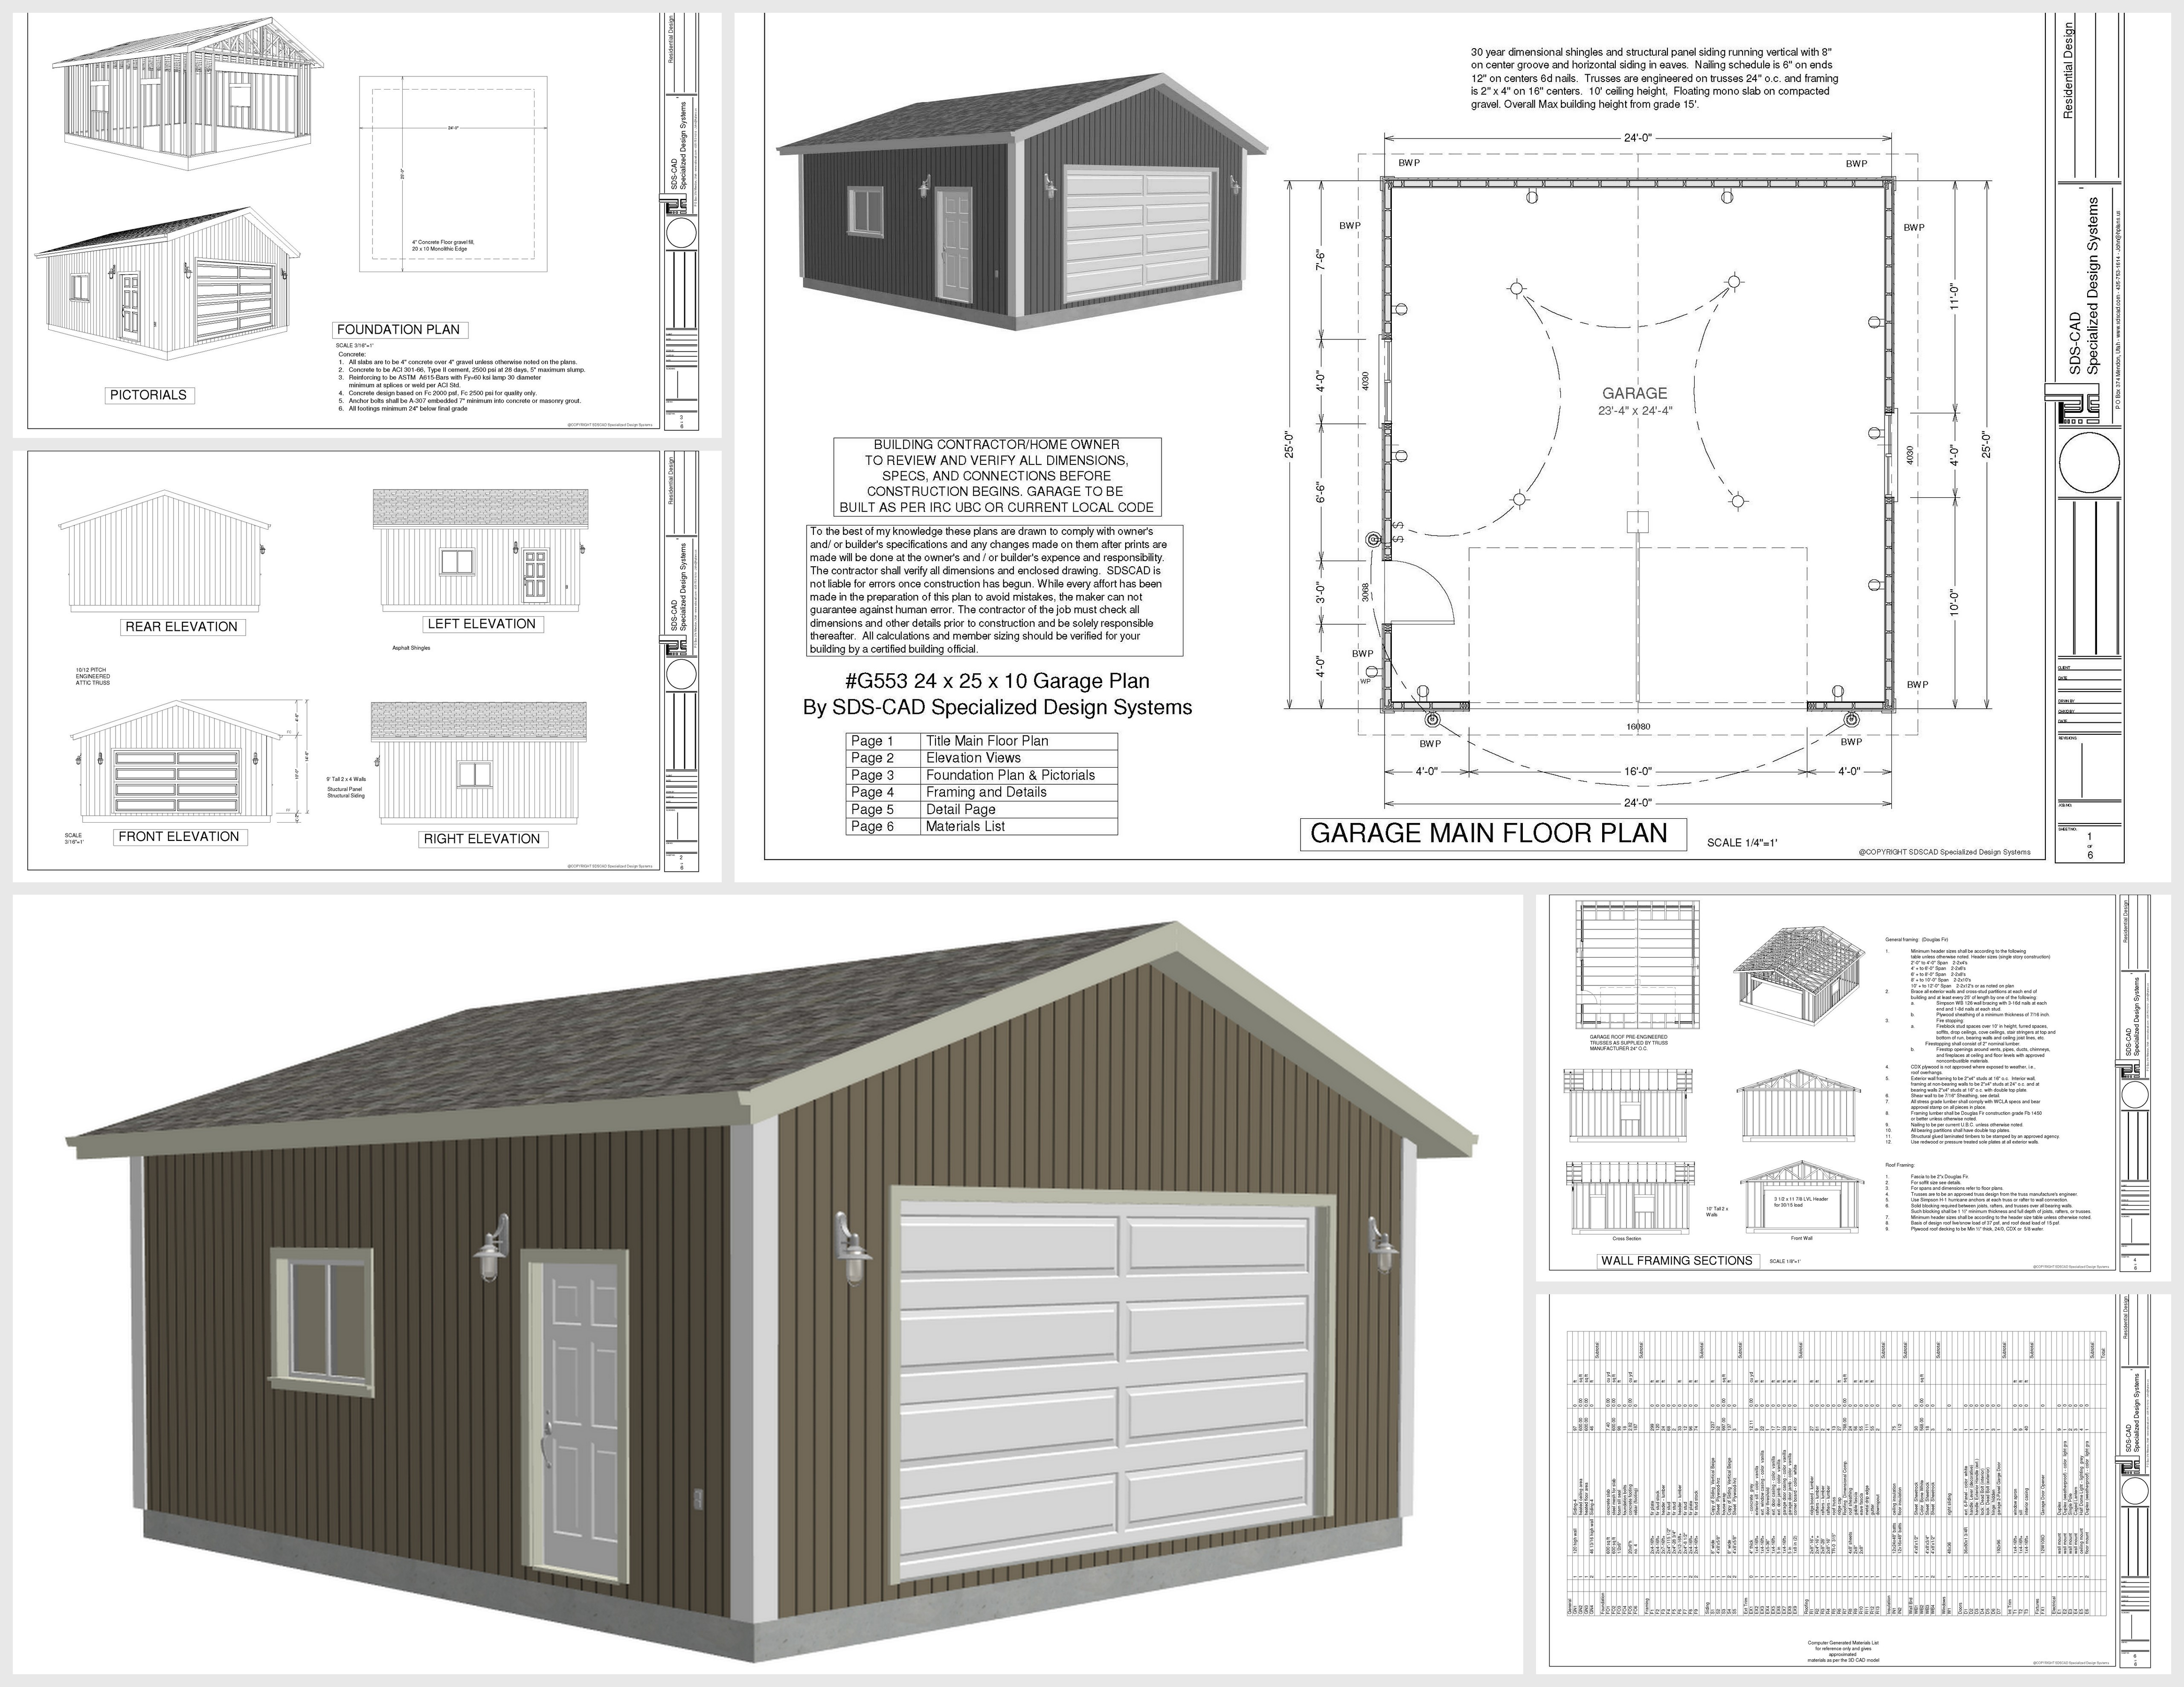 G553 24 x 25 x 10 garage plans with pdf and dwg files for Cheap garage plans